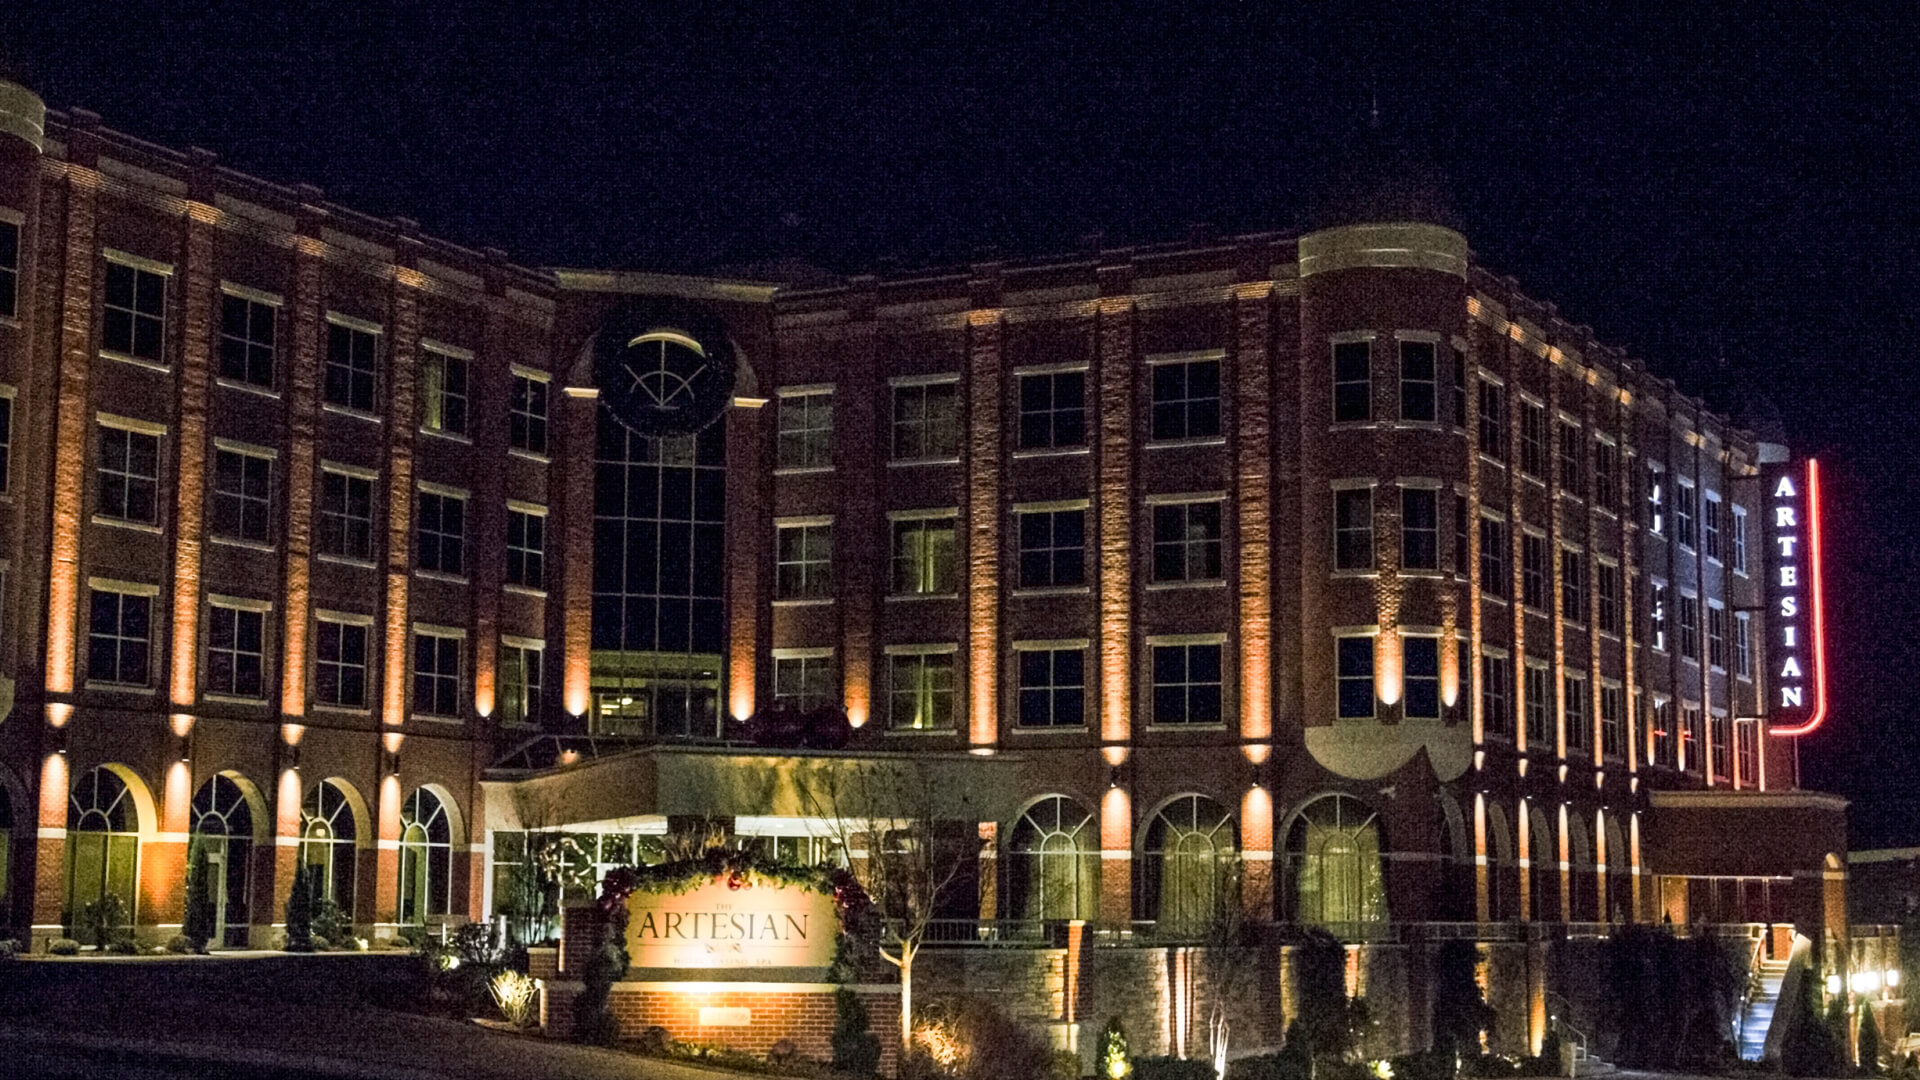 Slide 37 of 51: Cost: Nightly rooms from $149 Sulphur, Okla. offers a Vegas alternative that's got a style all its own. With a history that dates back to 1906, the Artesian focuses on timeless style with modern amenities. In addition to a 15,000-square-foot casino that features classic and cutting-edge gambling options, you'll find a full-service spa, bath house, shopping and three restaurants on site.